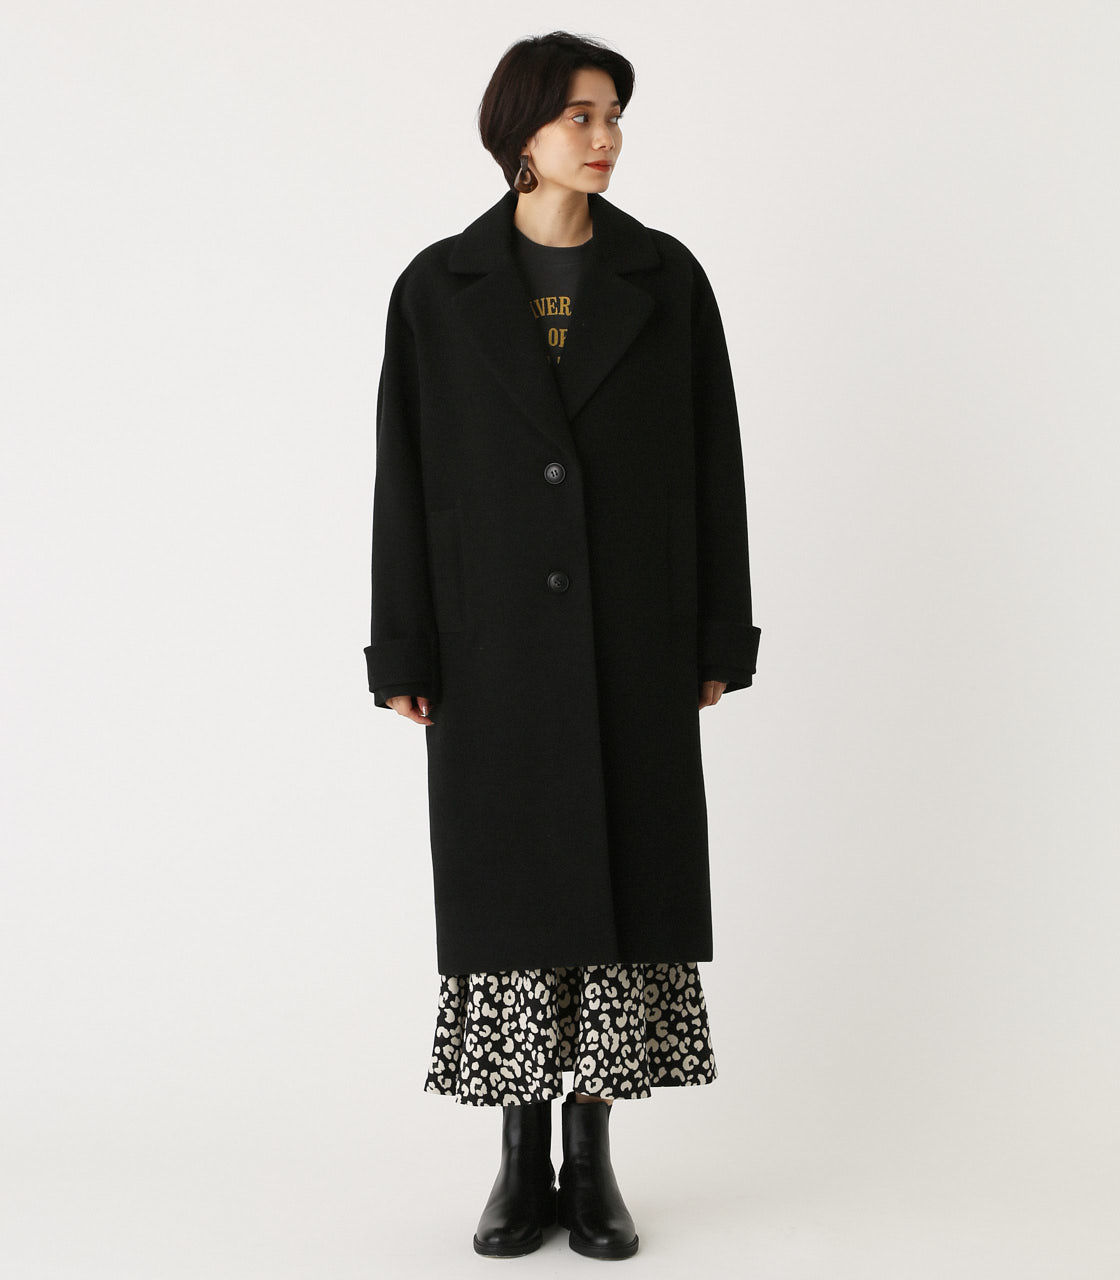 OVER LOOSE CHESTER COAT/オーバールーズチェスターコート 詳細画像 BLK 4